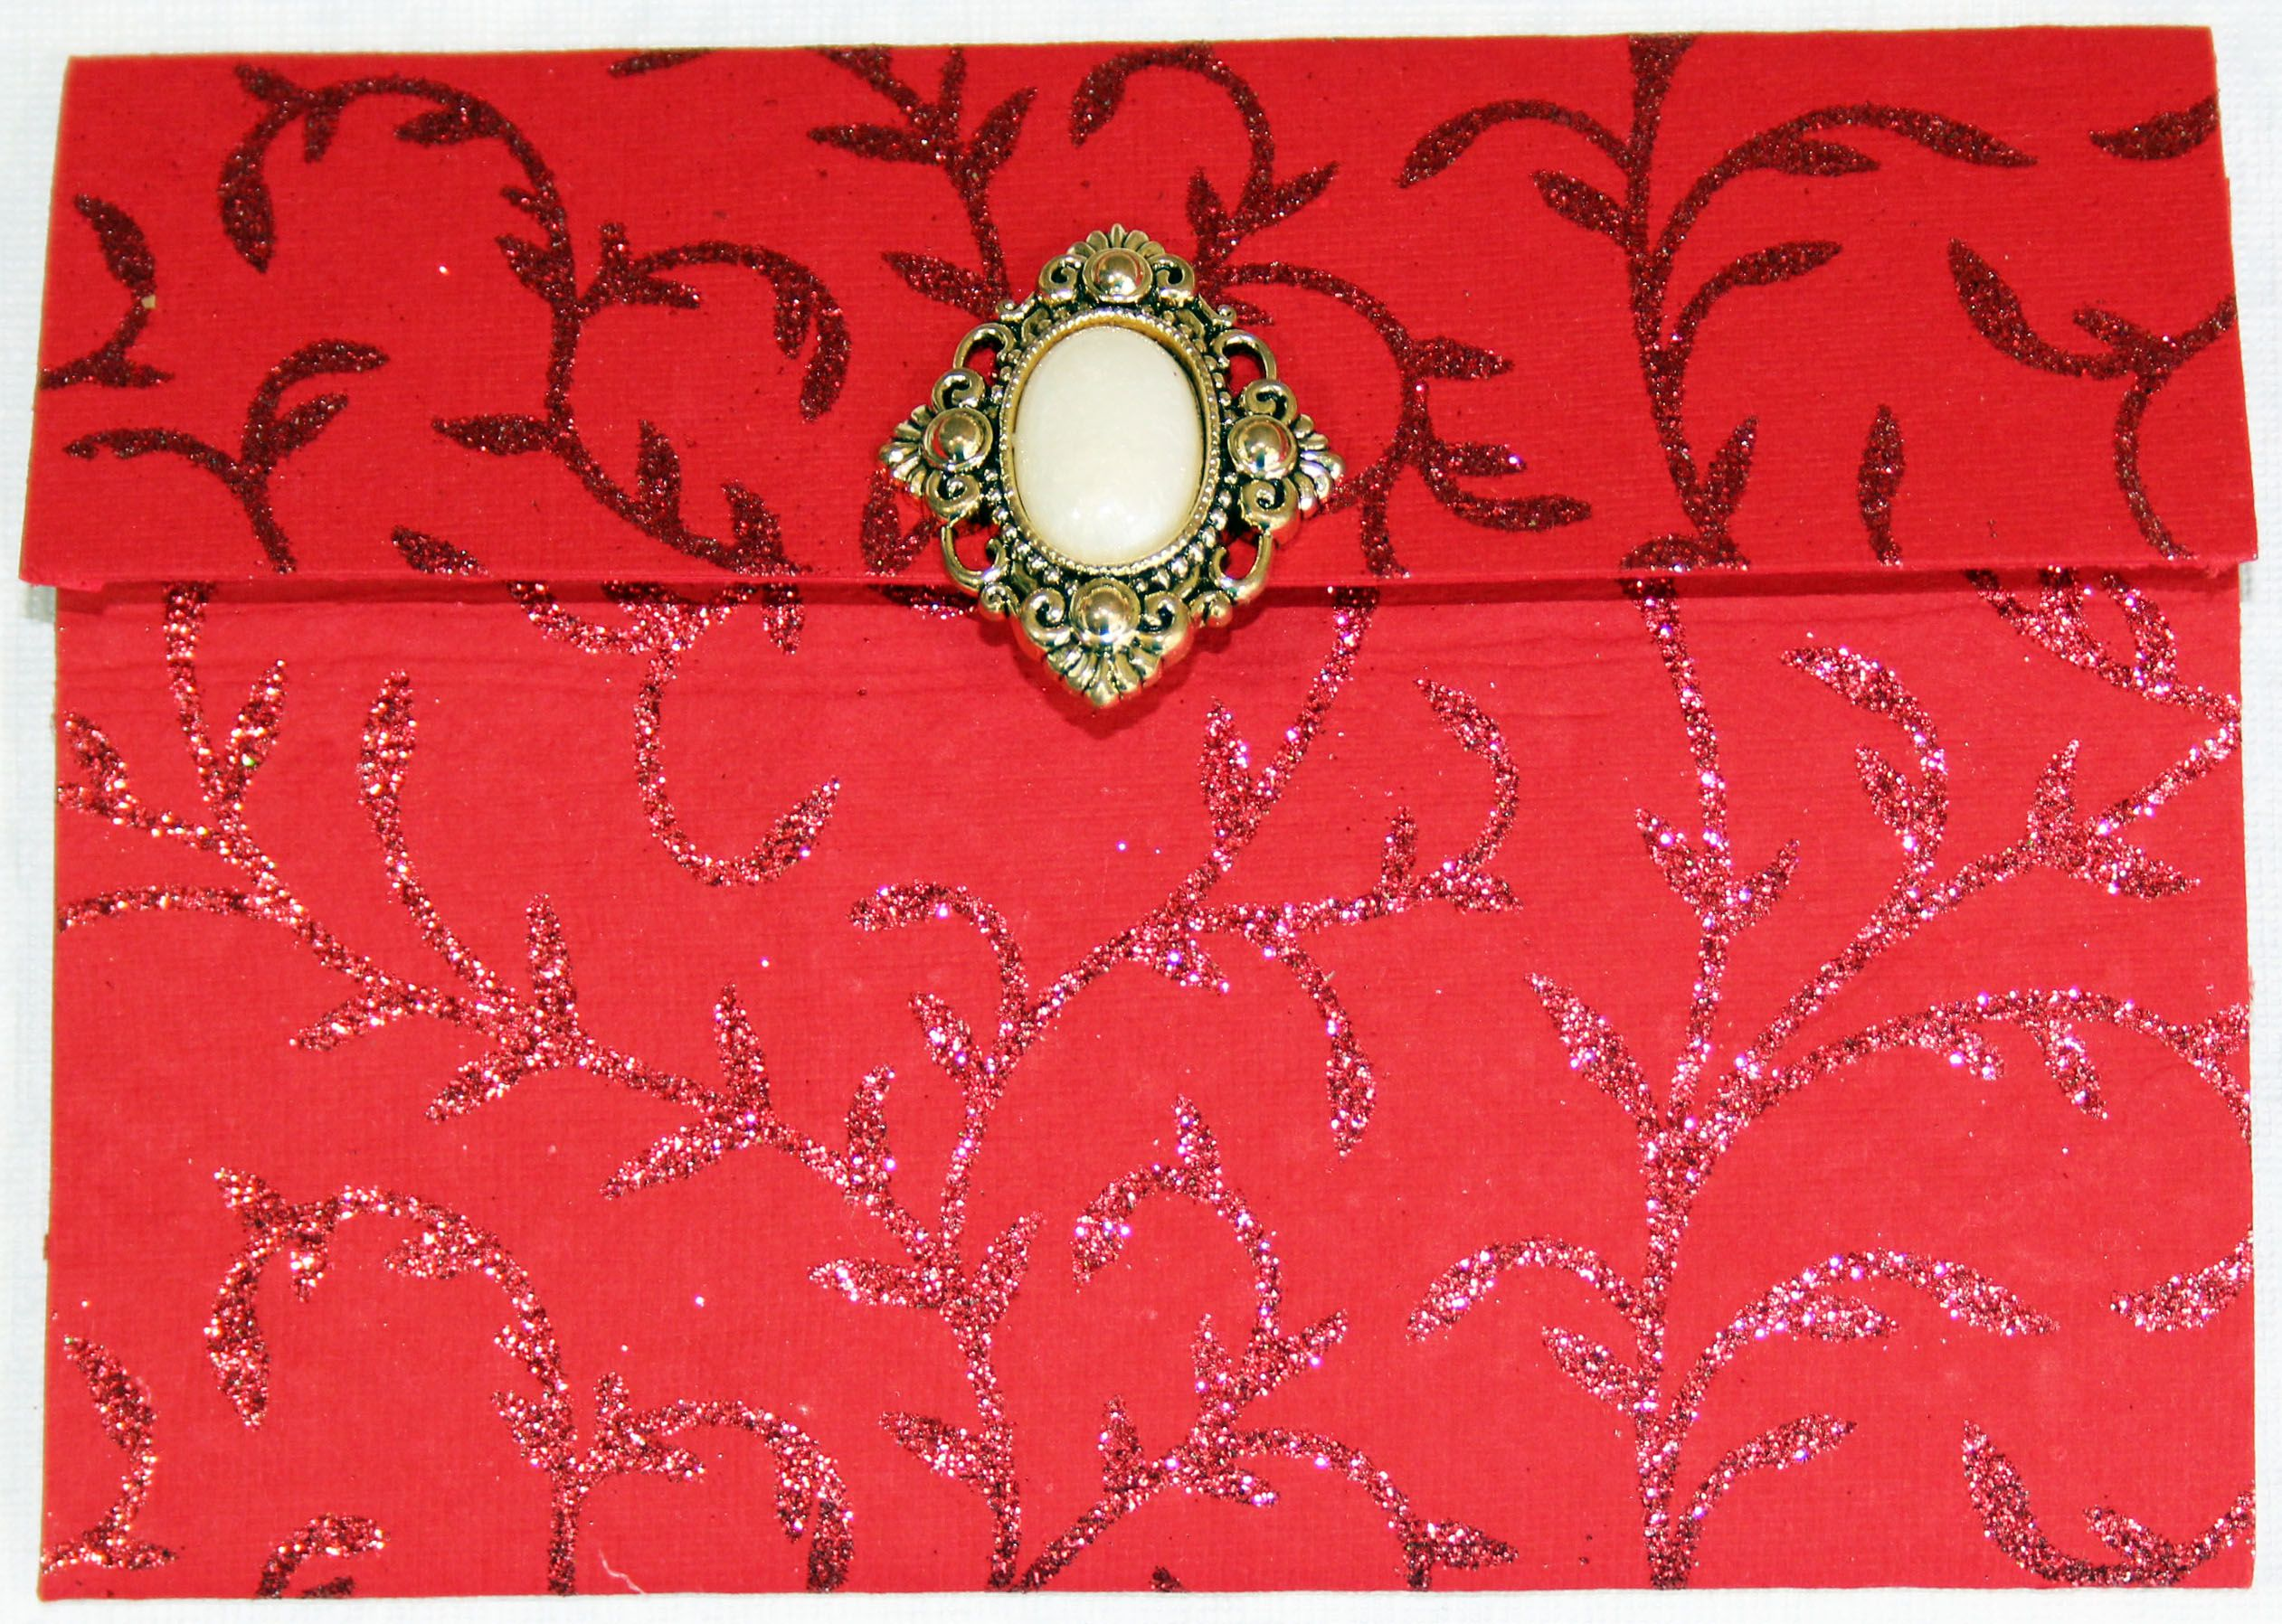 red glitter accented pocket fold invitation with large embellishment ...